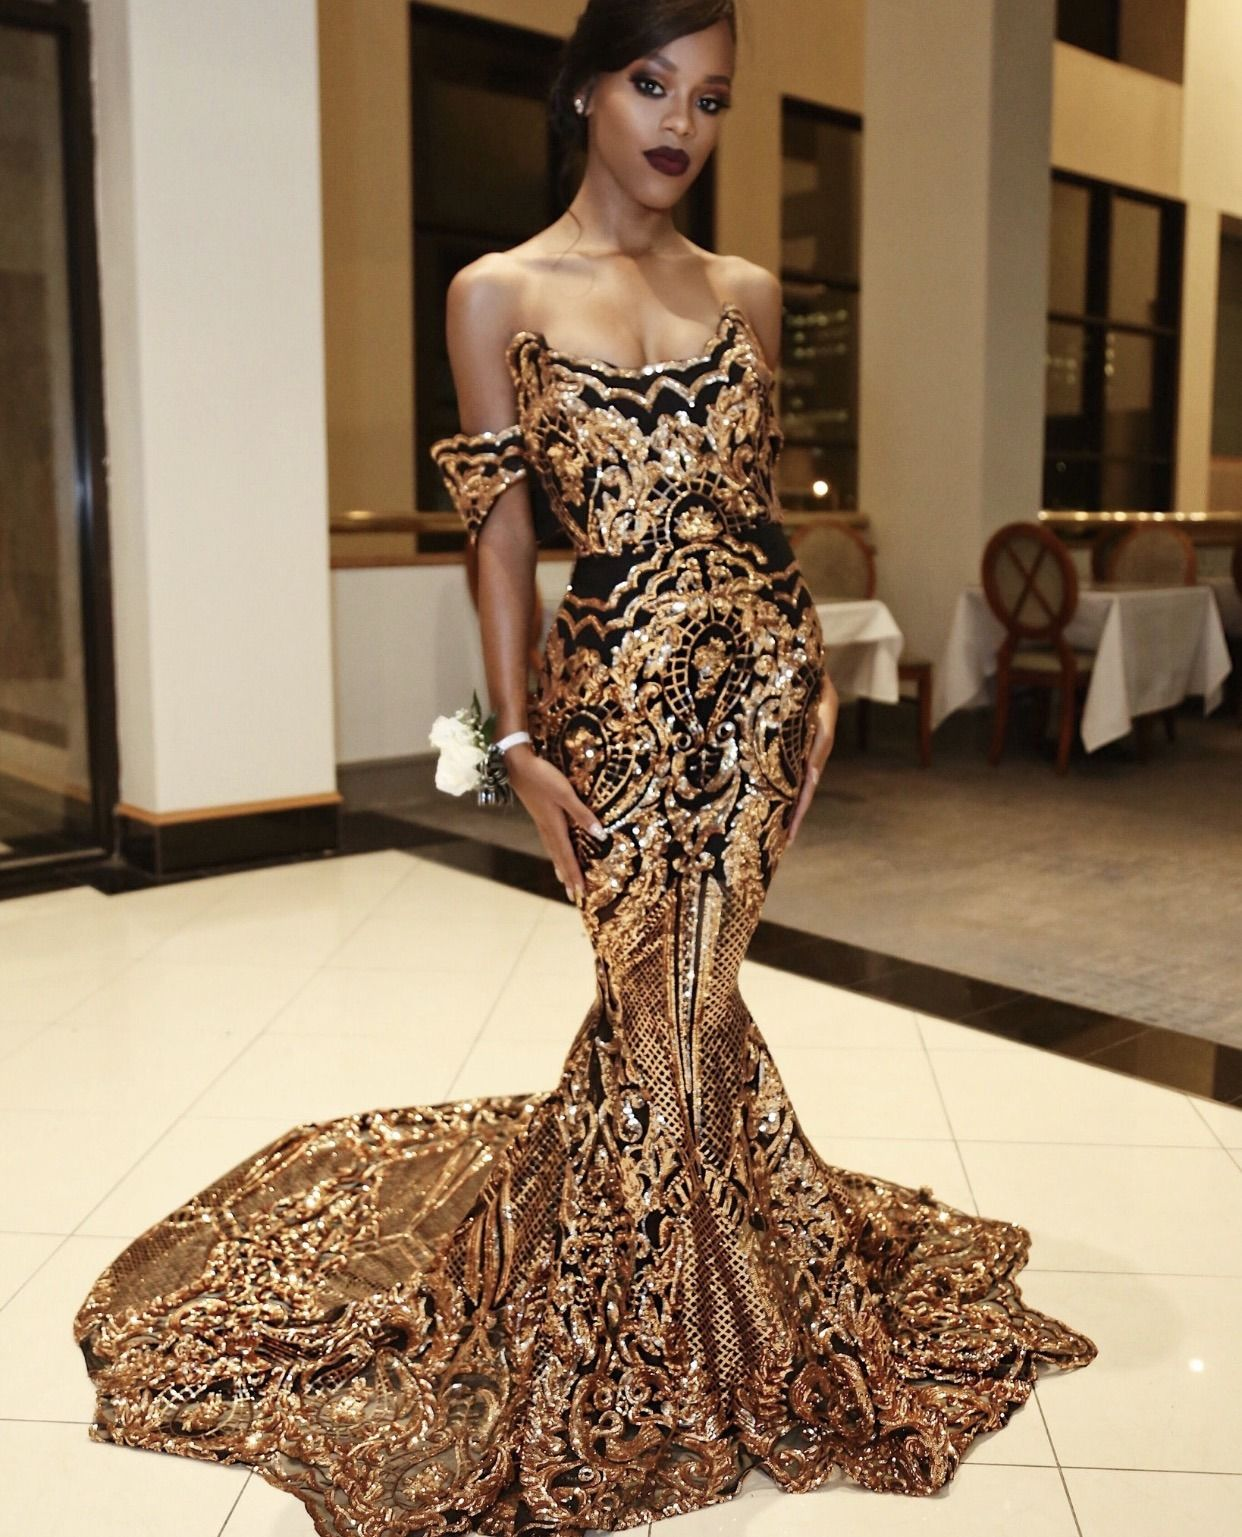 68f0f87837c5f Black and #Gold haute couture evening gown from the Darius ...